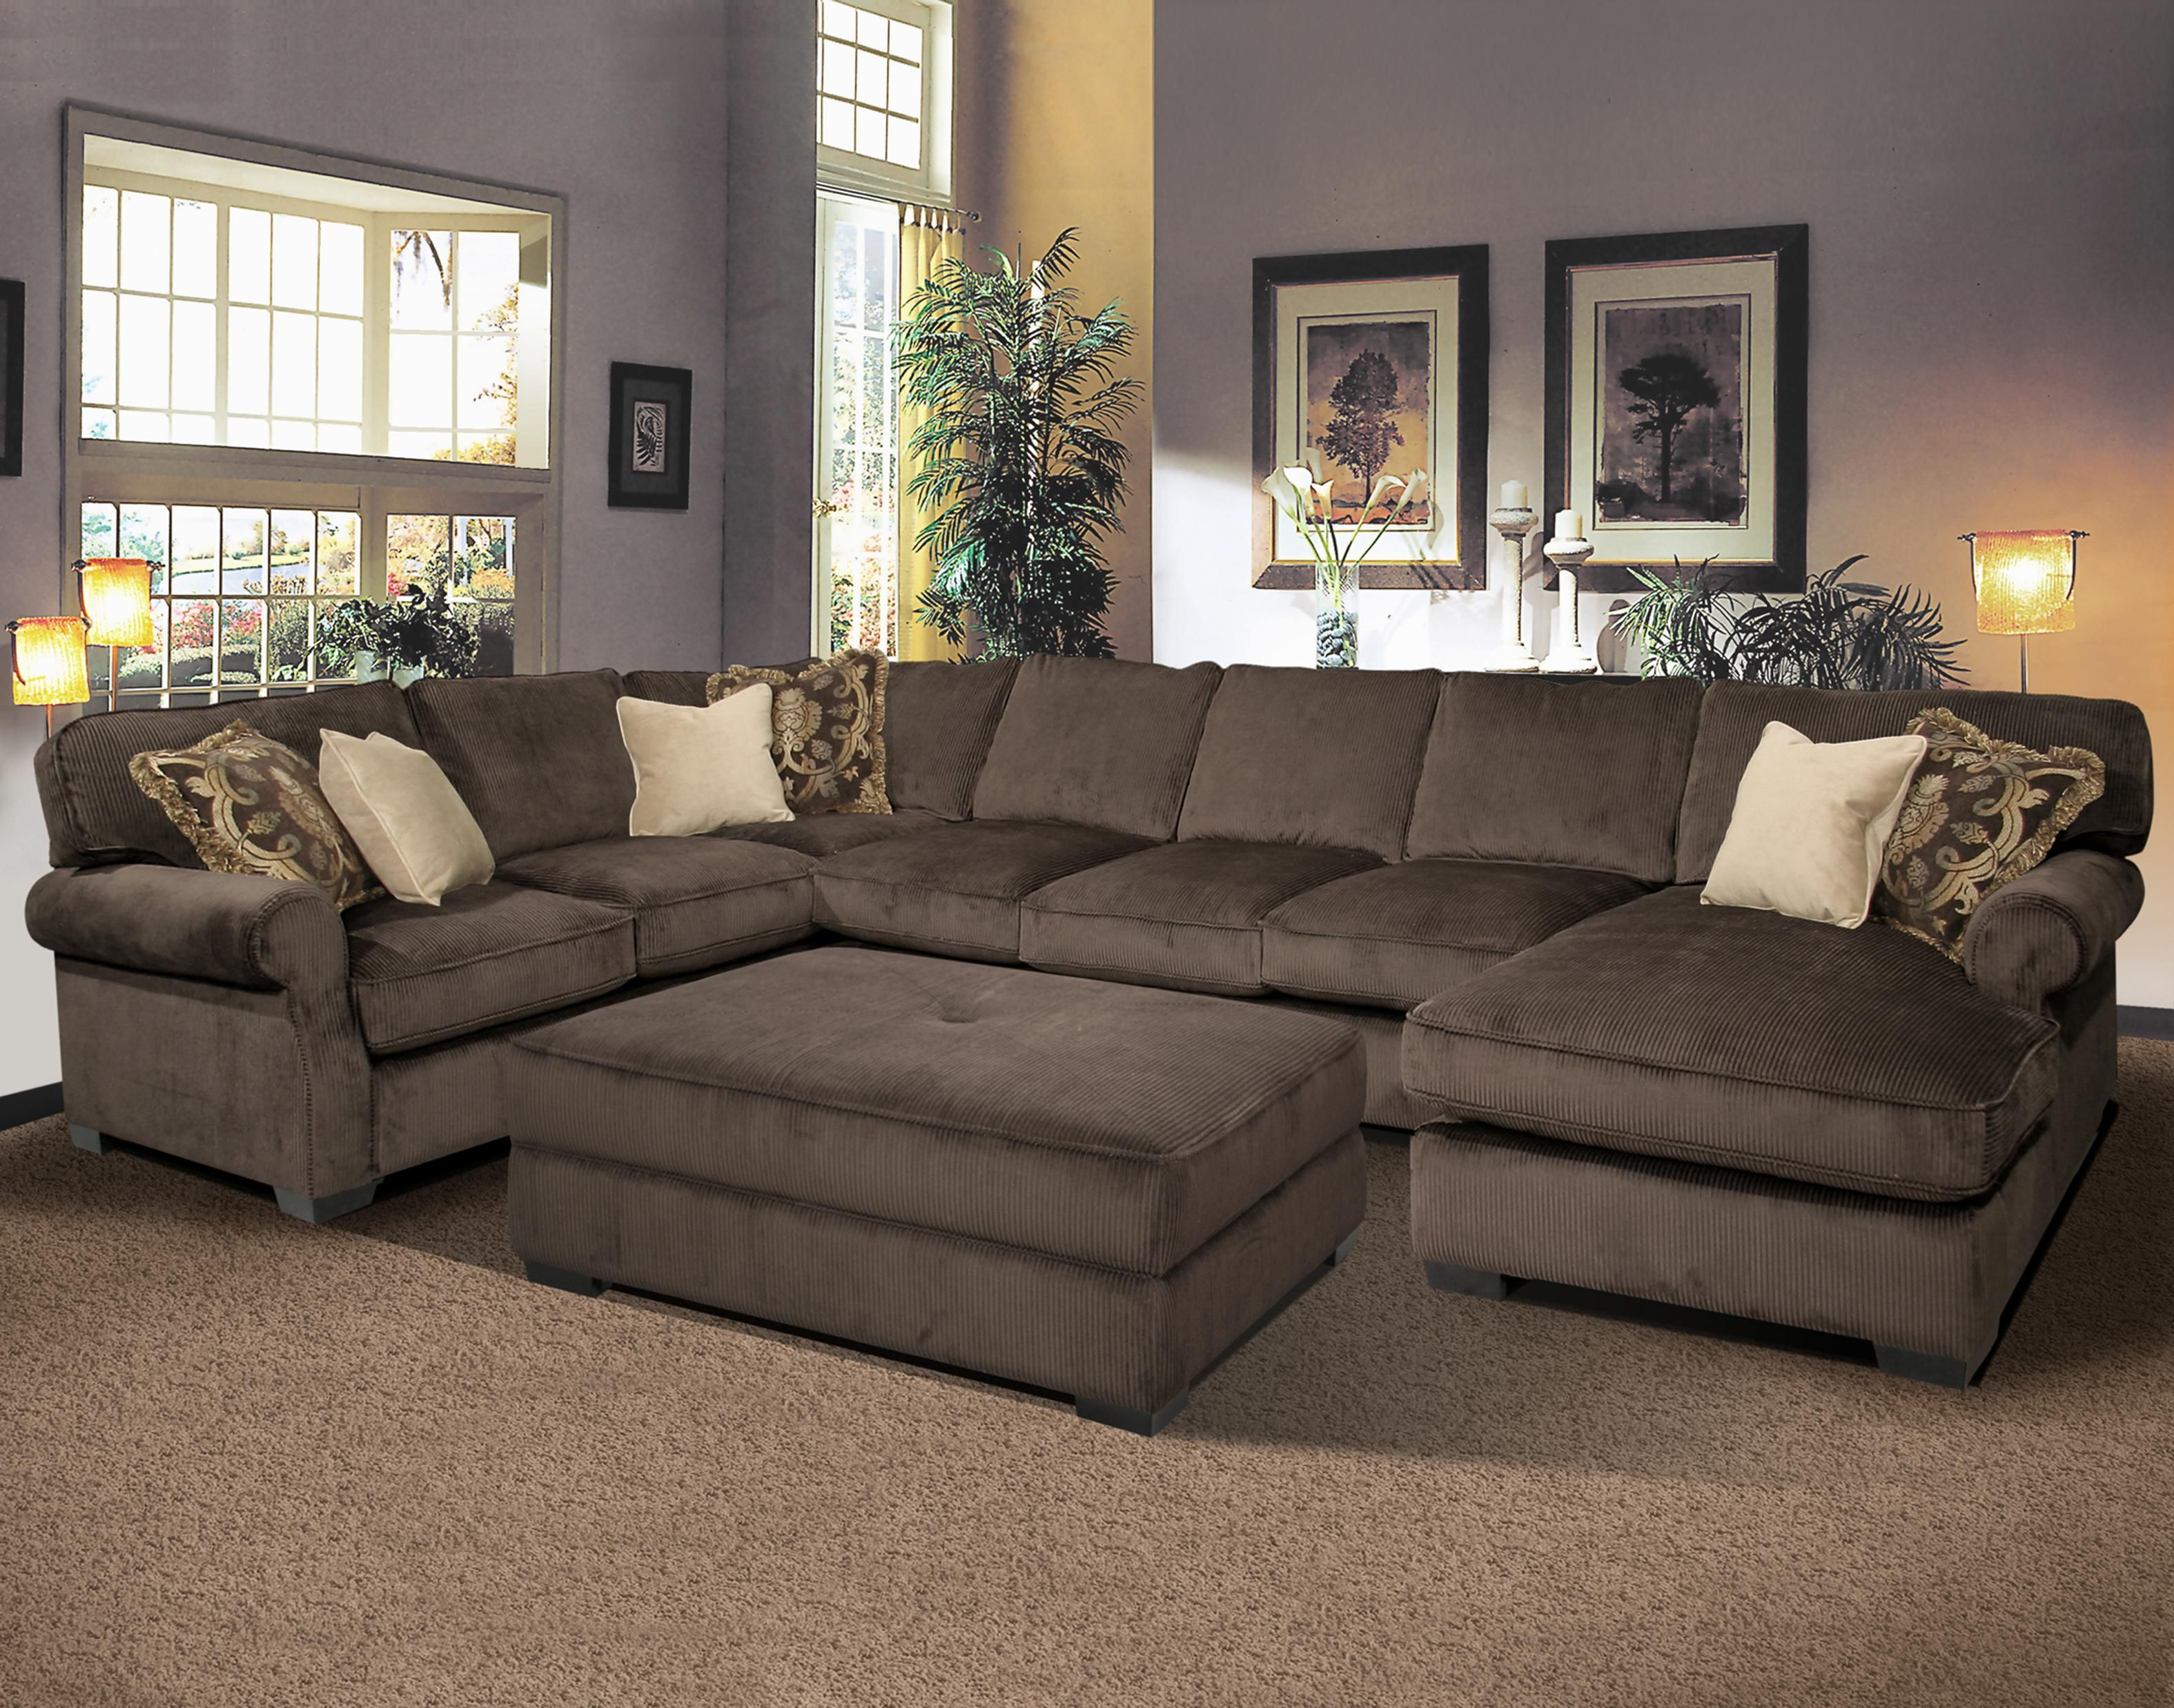 Comfy Sectional Couch Home Interior Design Ideas In 2020 Home Sectional Sofa With Chaise Home Furnishings